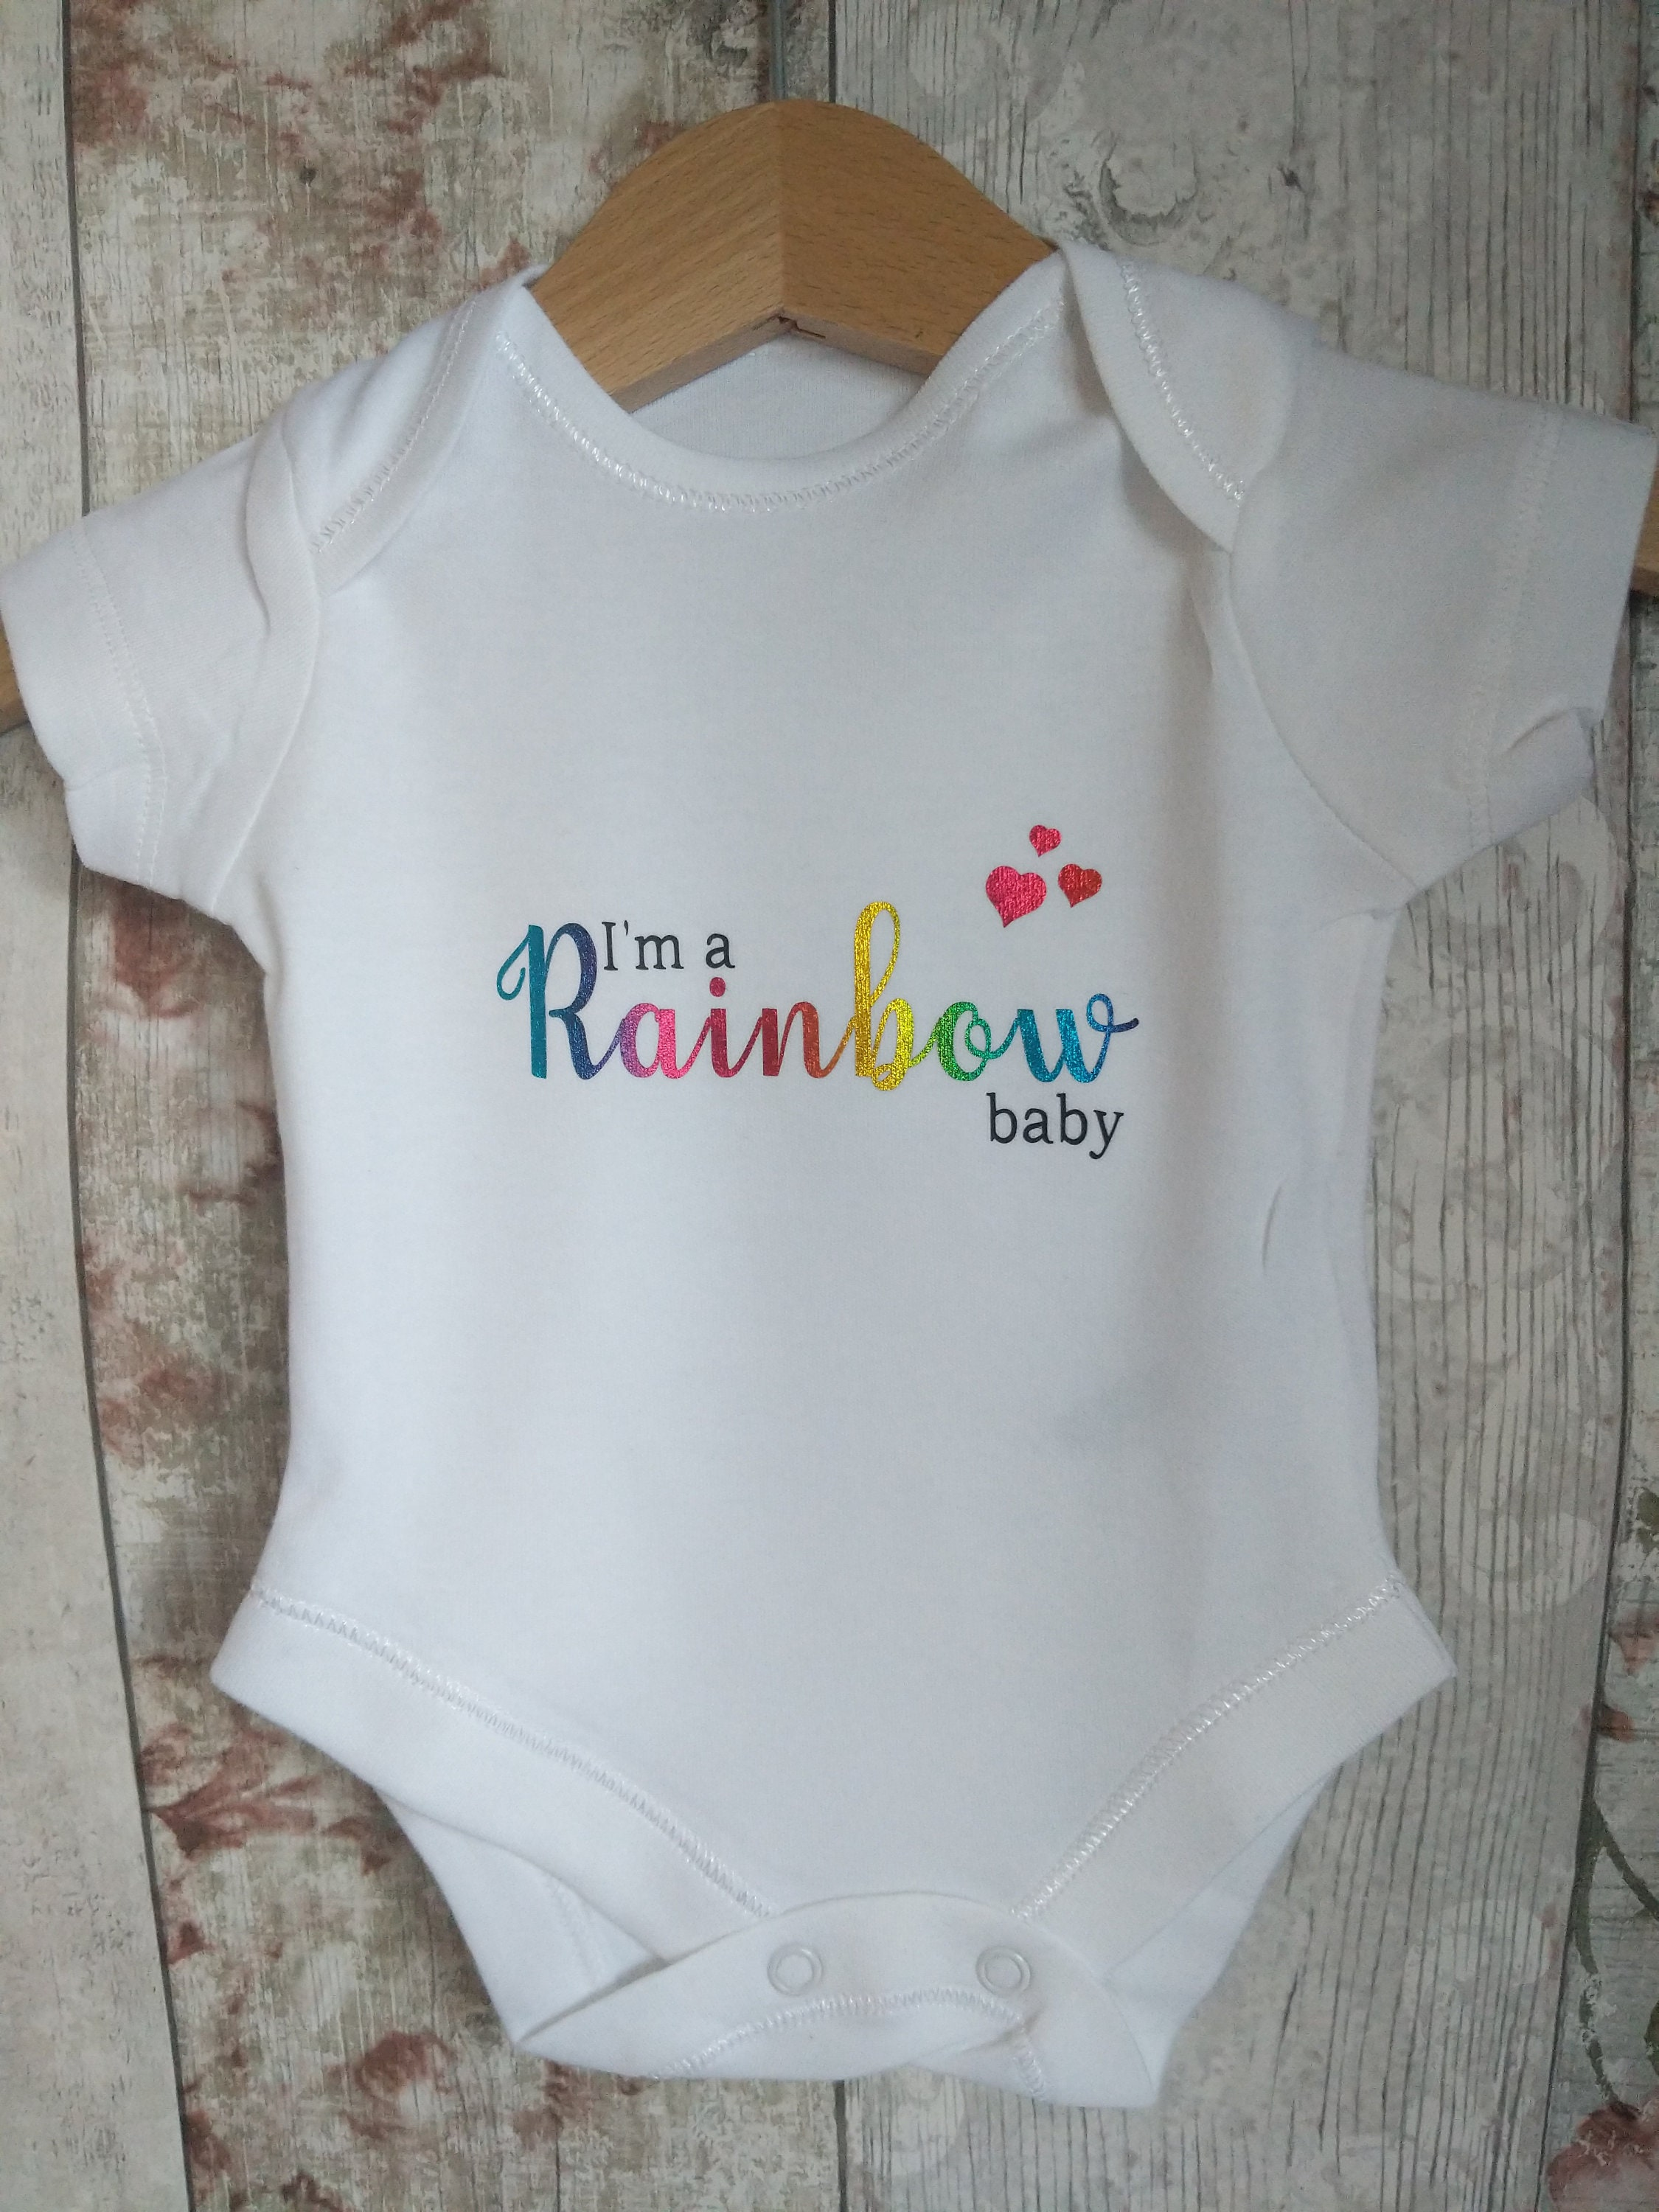 Personalised unisex baby grow, rainbow baby grow, new dad present, rainbow after storm, cute baby grow, baby dad daddy, new dad gift